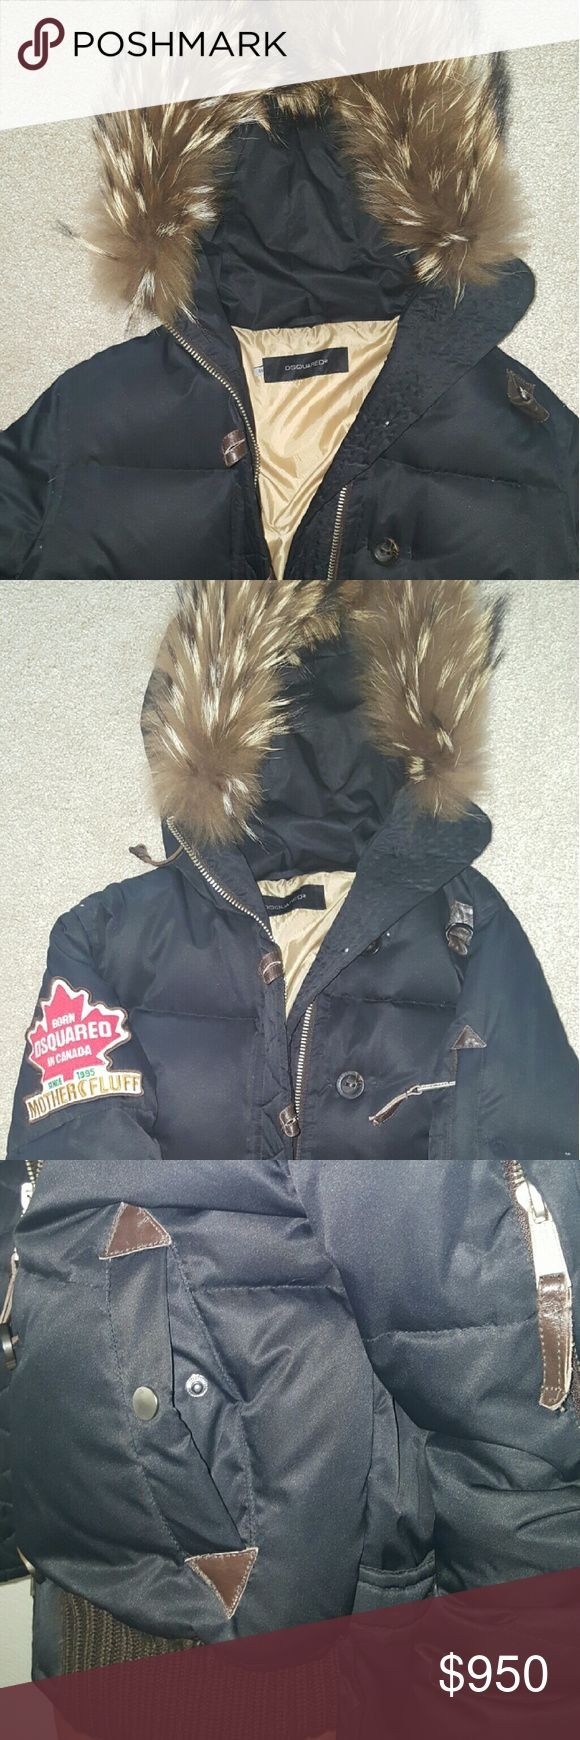 Dsquared  puffer down jacket Awesome winter Dsquared parker!! Worn only once for a trip and have no use for them. Live in warm climate all yr long, taking offers as well, kept in excellent climate control condition. Dsquared  Jackets & Coats Puffers